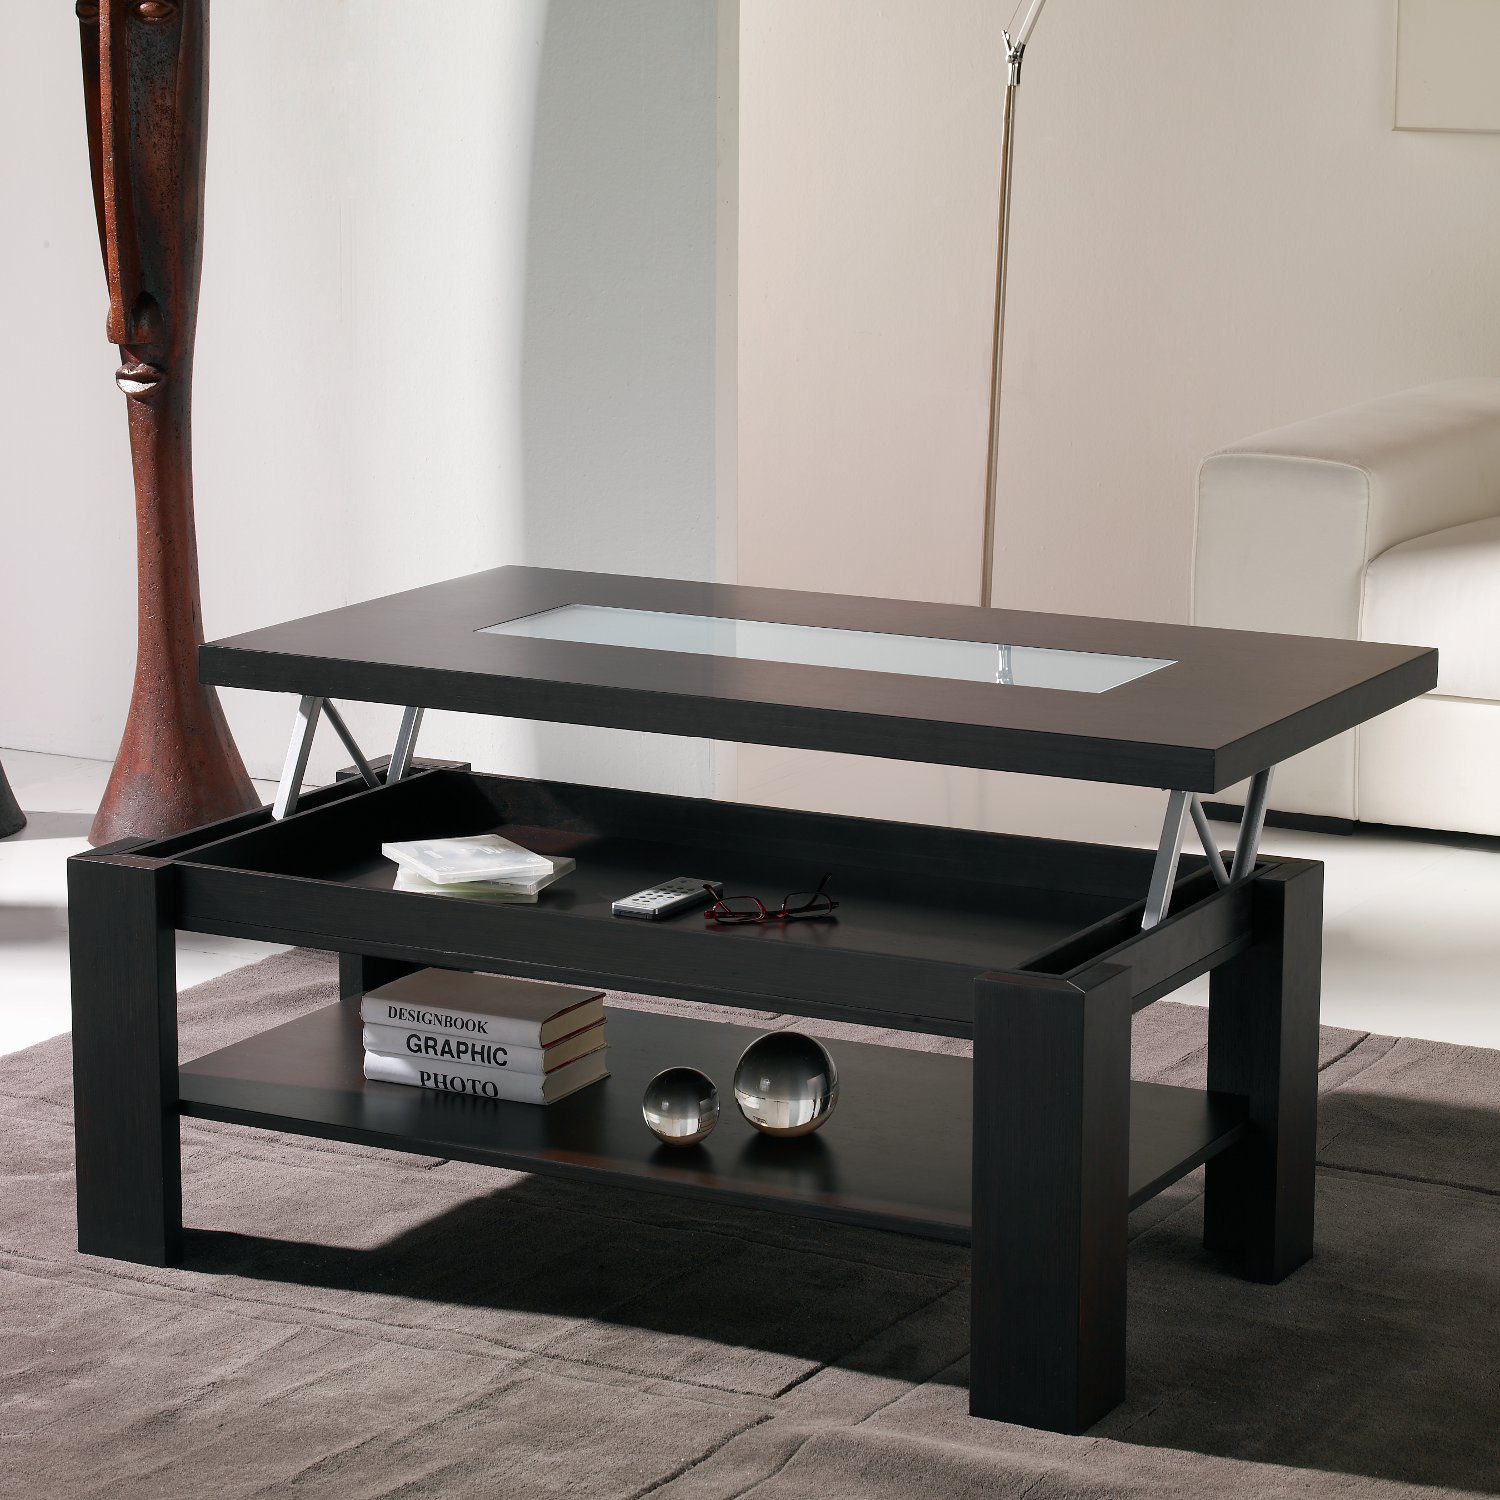 La table basse relevable r volutionne le salon d co et - Table de salon reglable en hauteur ...